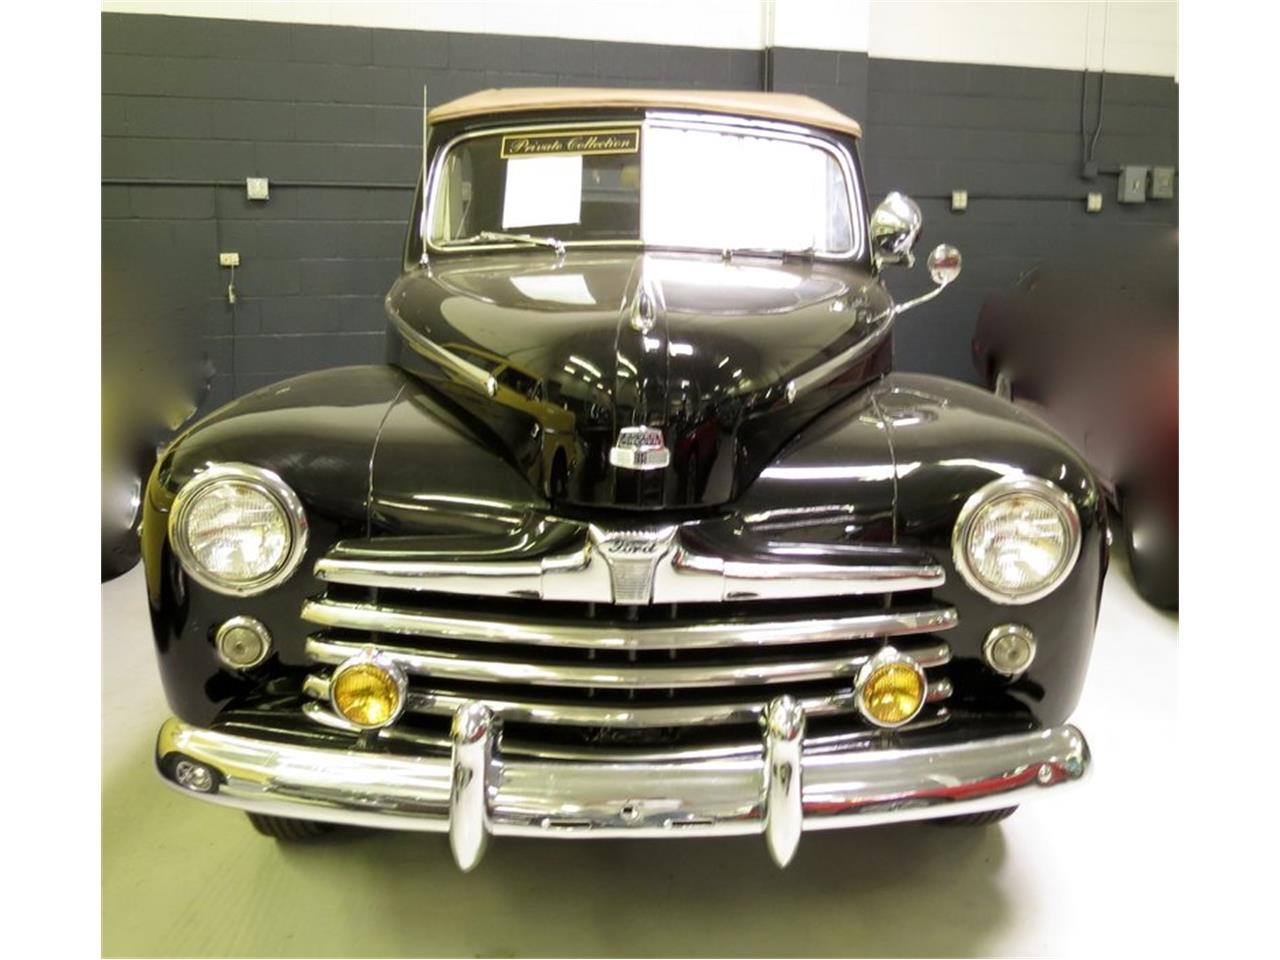 Large Picture of 1948 Ford Super Deluxe located in Dayton Ohio - $39,995.00 - FHXH